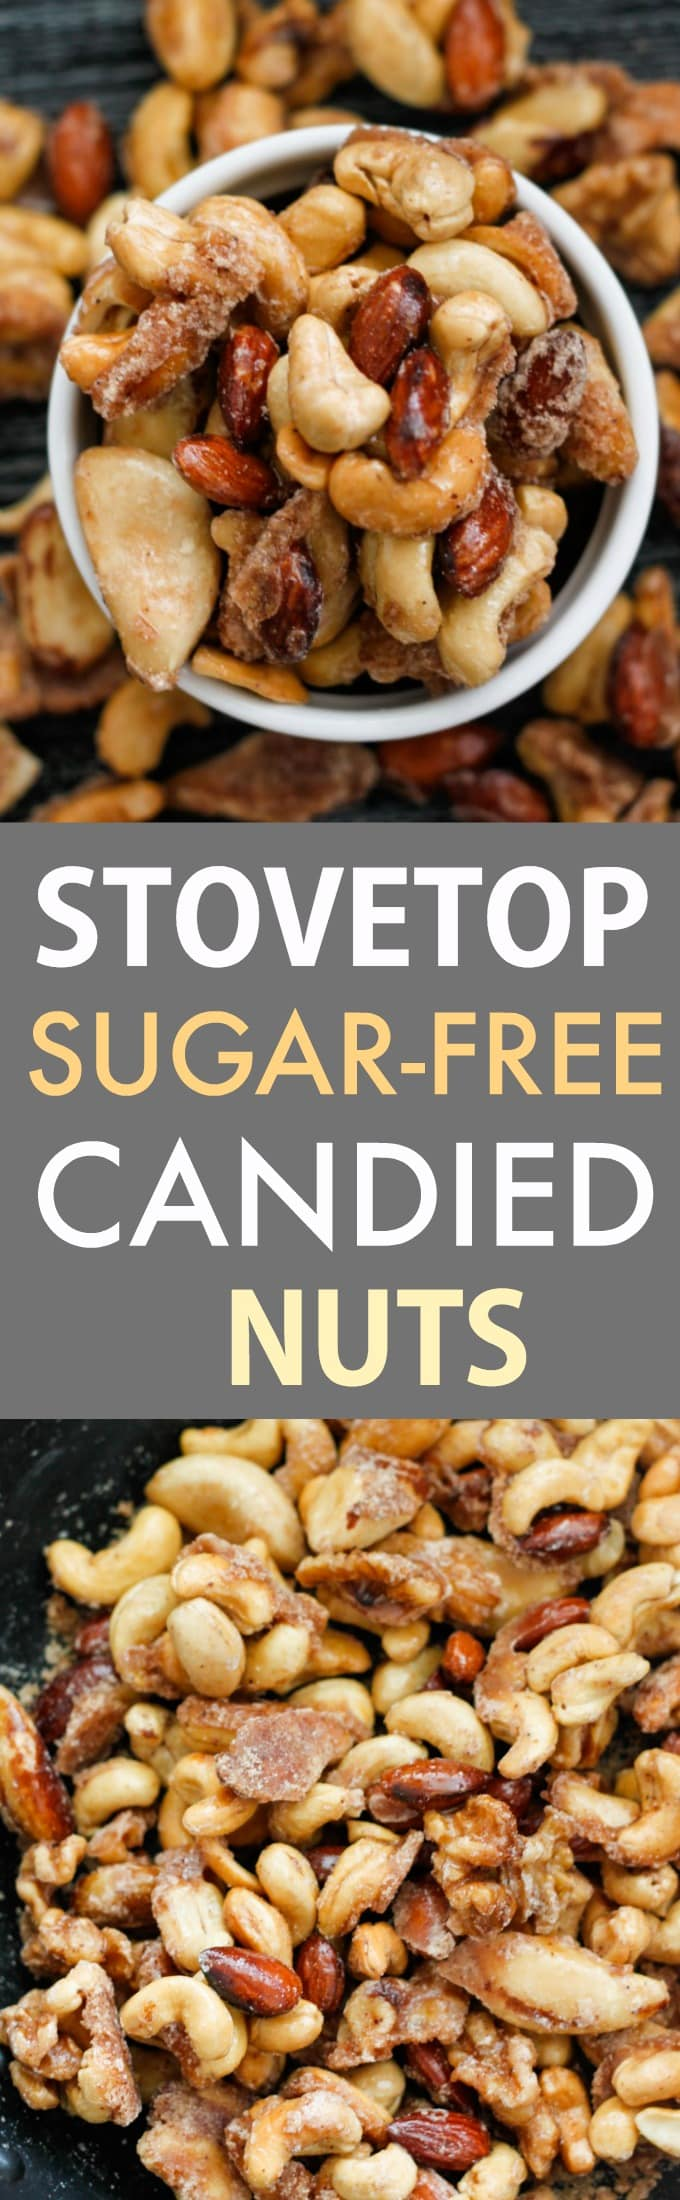 Easy healthy Stovetop Sugar Free Candied Nuts made with NO sugar and completely keto, paleo, vegan and gluten-free- The perfect Christmas gift or holiday treat- Crispy, crunchy, sweet and salty candied nuts with a hint of cinnamon!